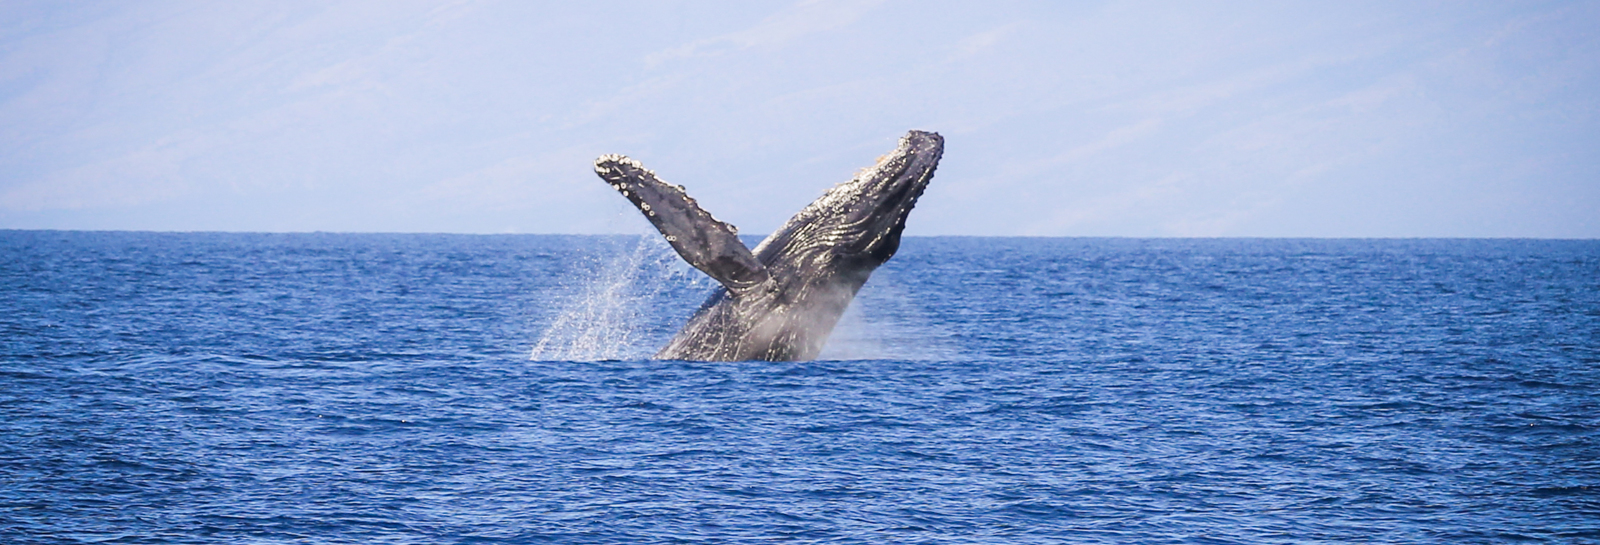 Destination Bucket List_whale